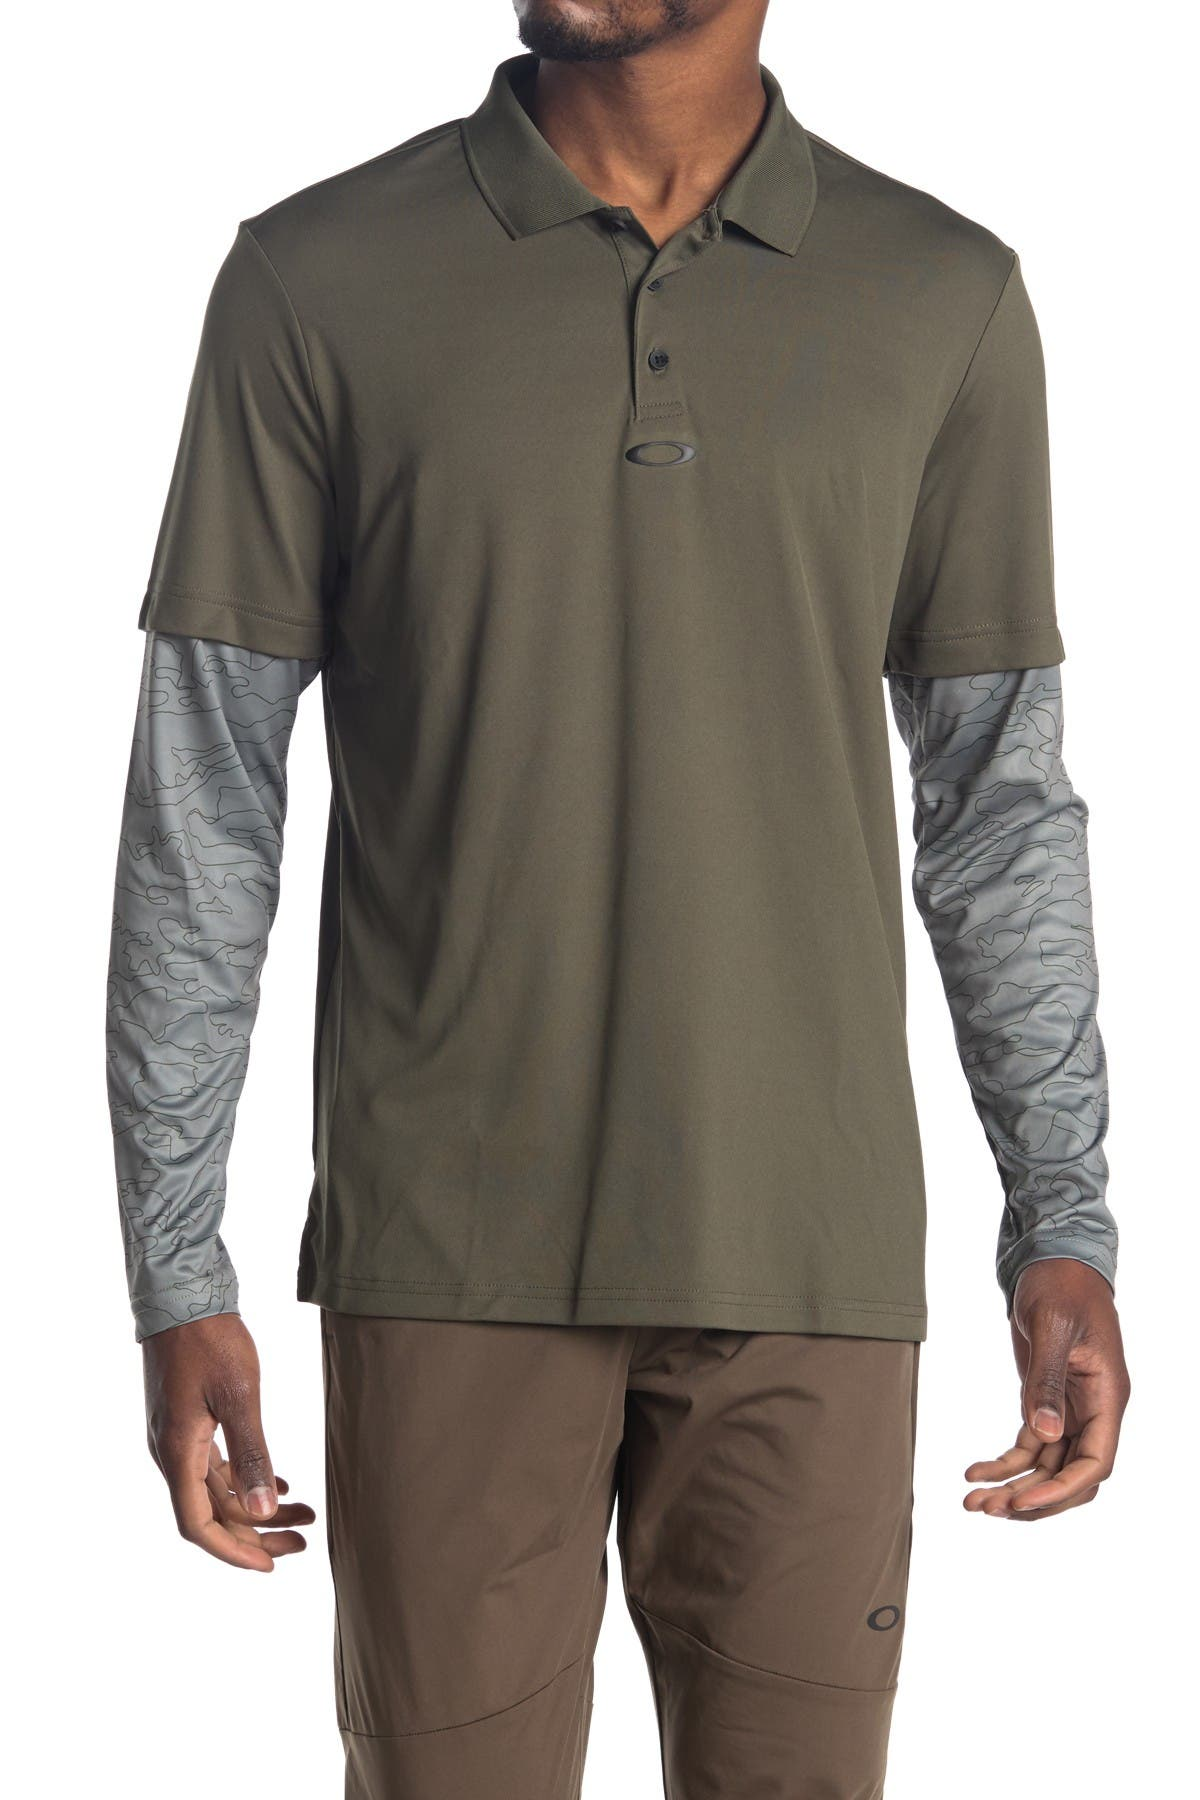 Image of Oakley Long Sleeve Polo